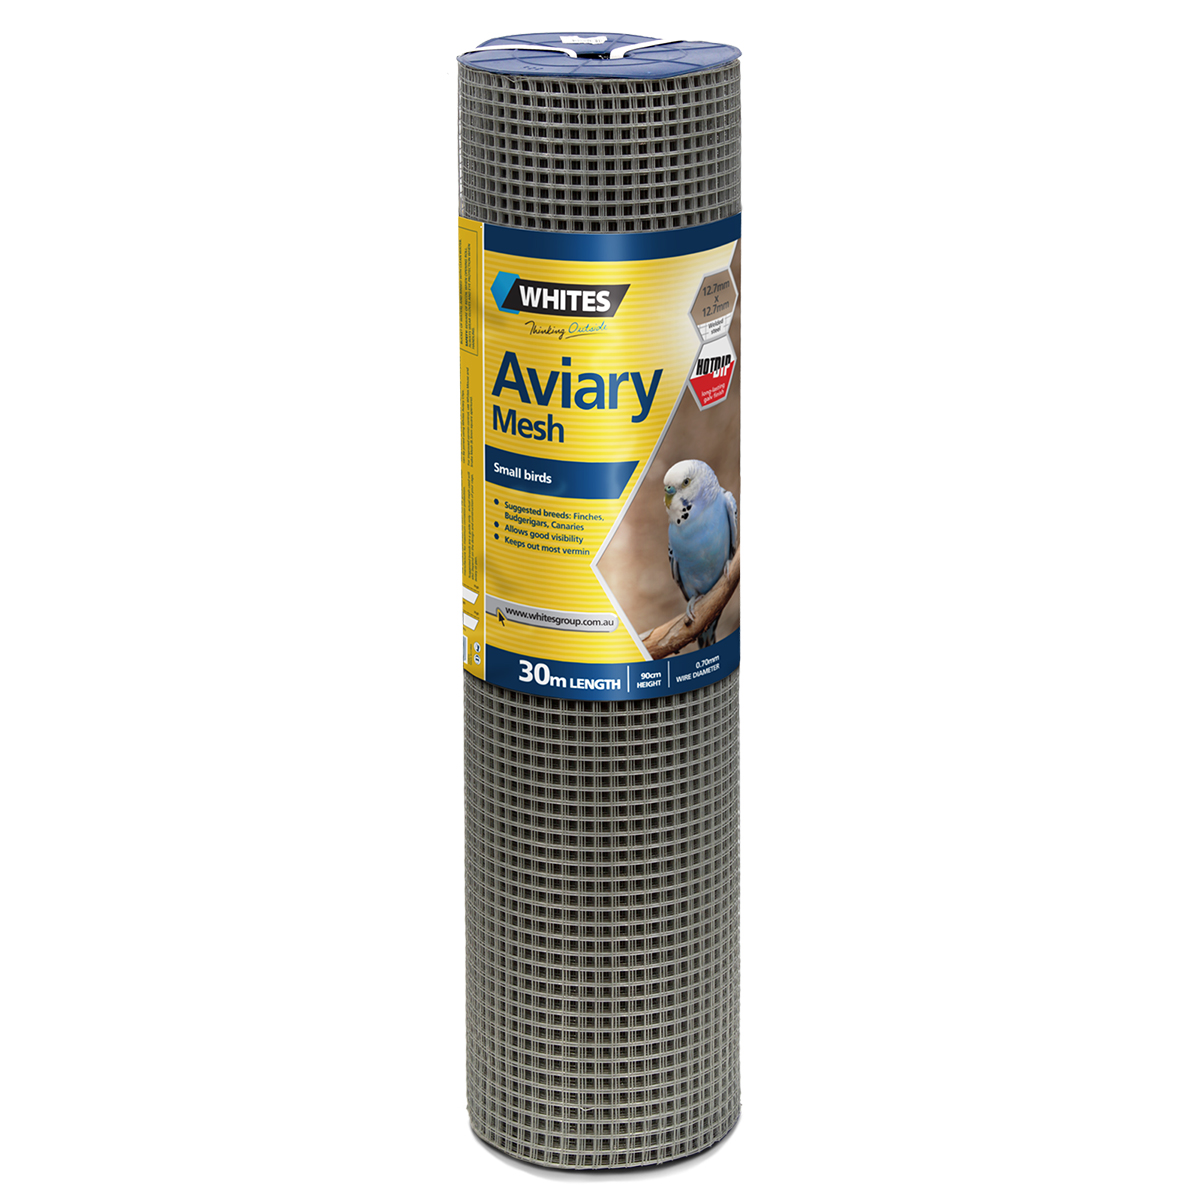 20870 90cm 12x12 Small Bird Aviary Mesh 30m